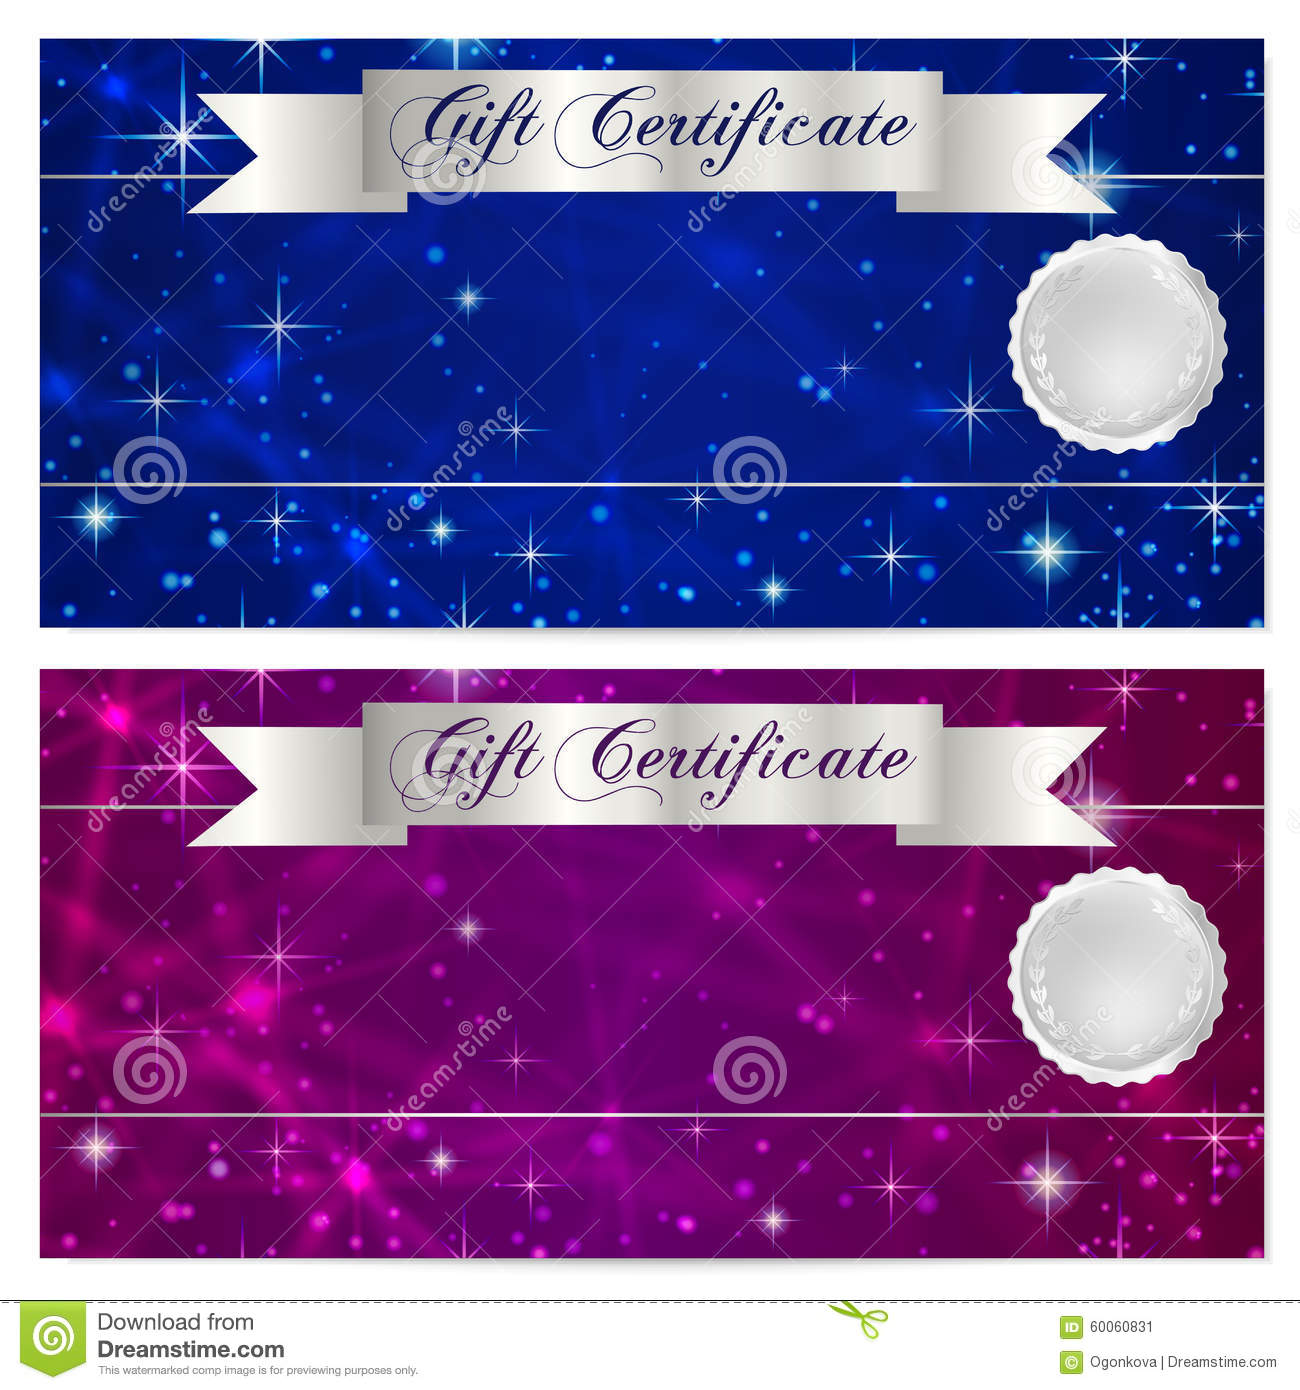 Gift certificate, Voucher, Coupon, Reward or Gift card template with sparkling, twinkling stars texture (pattern). Night sky